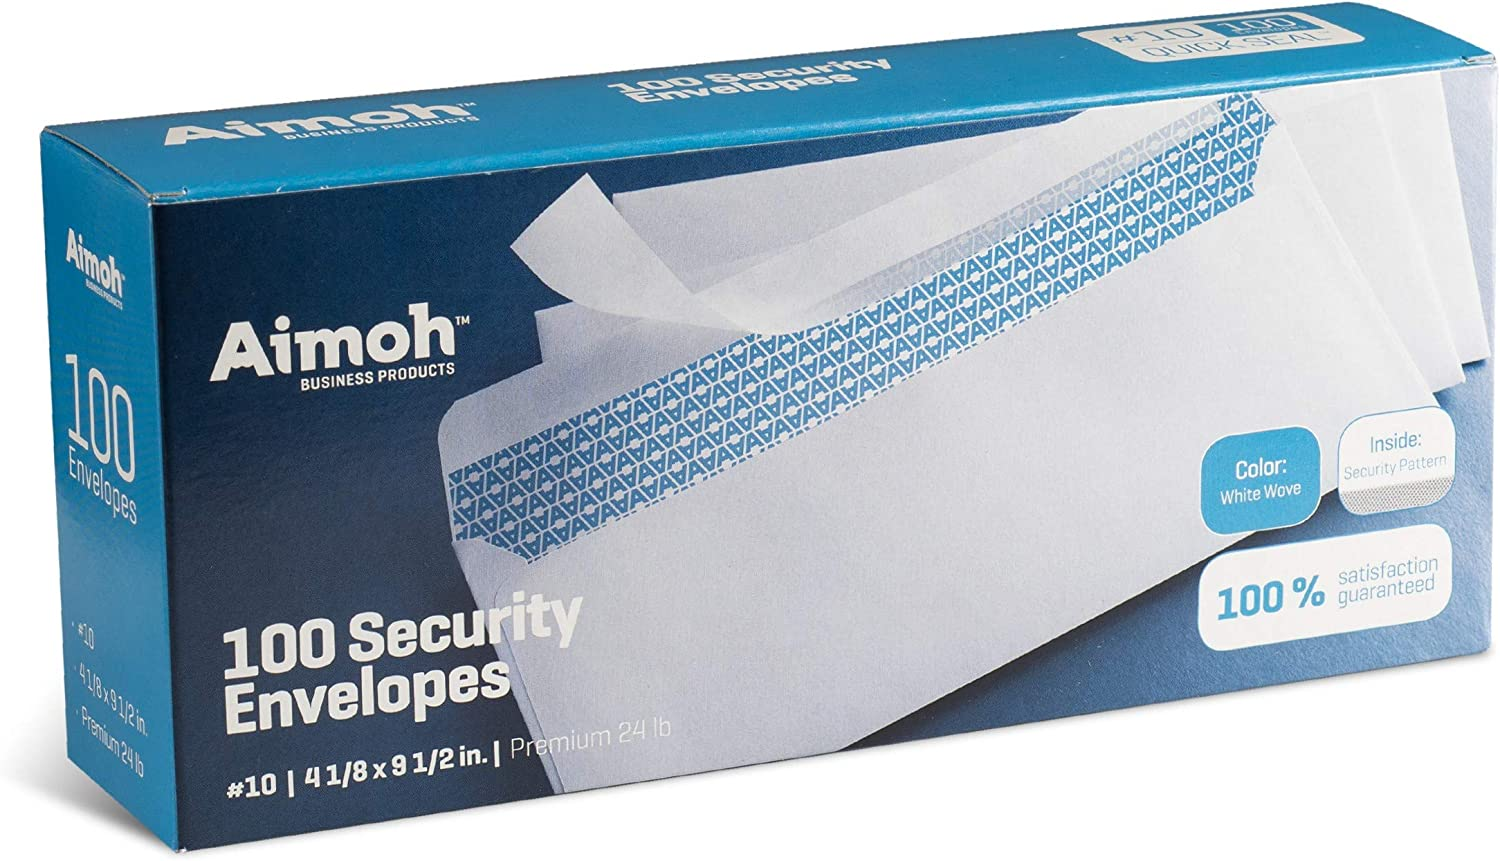 #10 Security Tinted Self-Seal Envelopes - No Window - EnveGuard, Size 4-1/8 X 9-1/2 Inches - White - 24 LB - 100 Count (34100) : Office Products